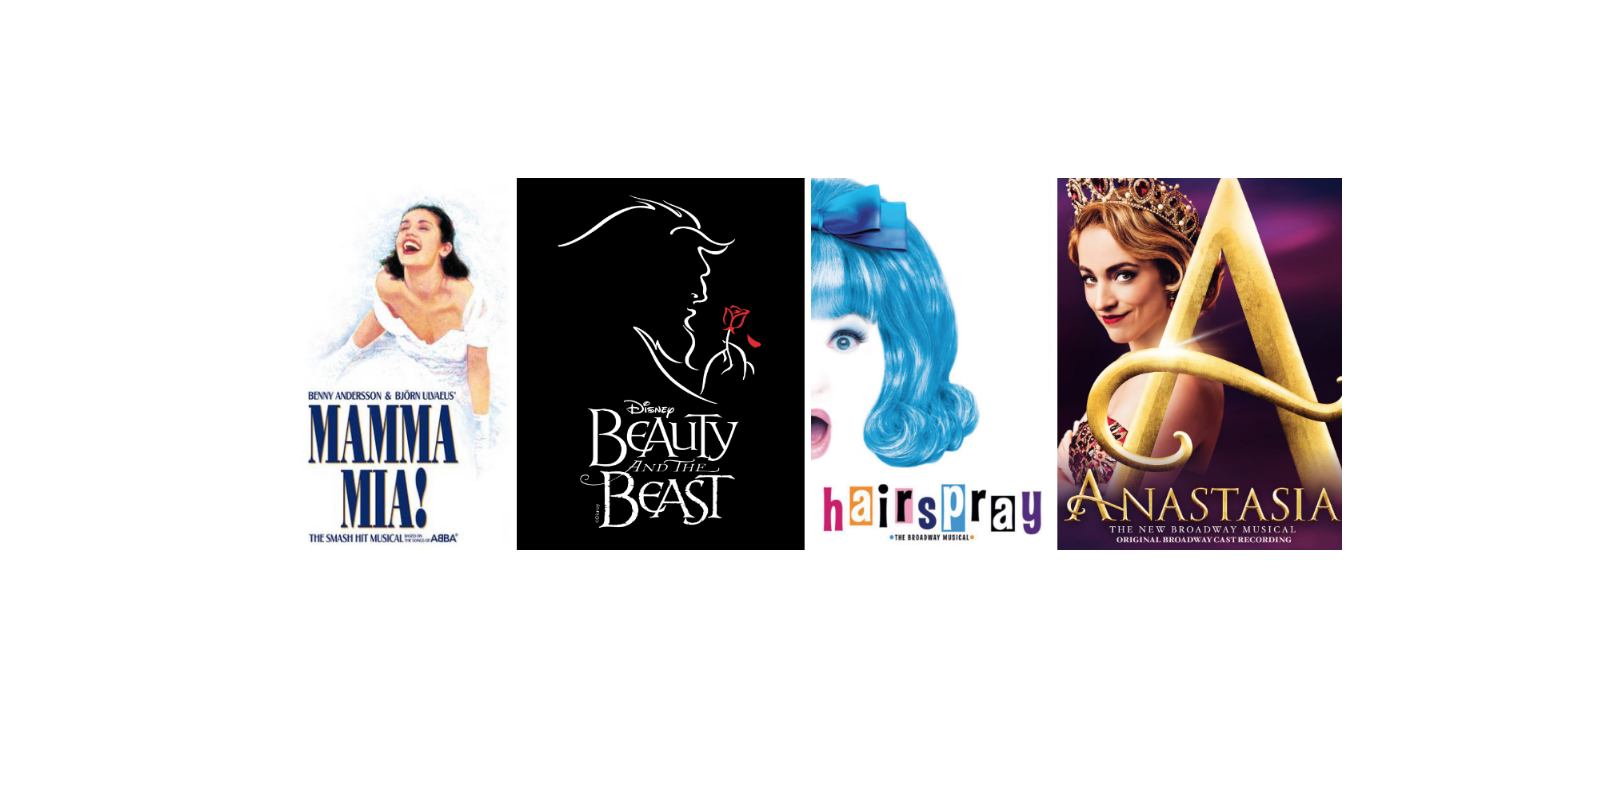 A Spring Break Program - Anastasia, Mamma Mia!, Hairspray, and Beauty and the Beast